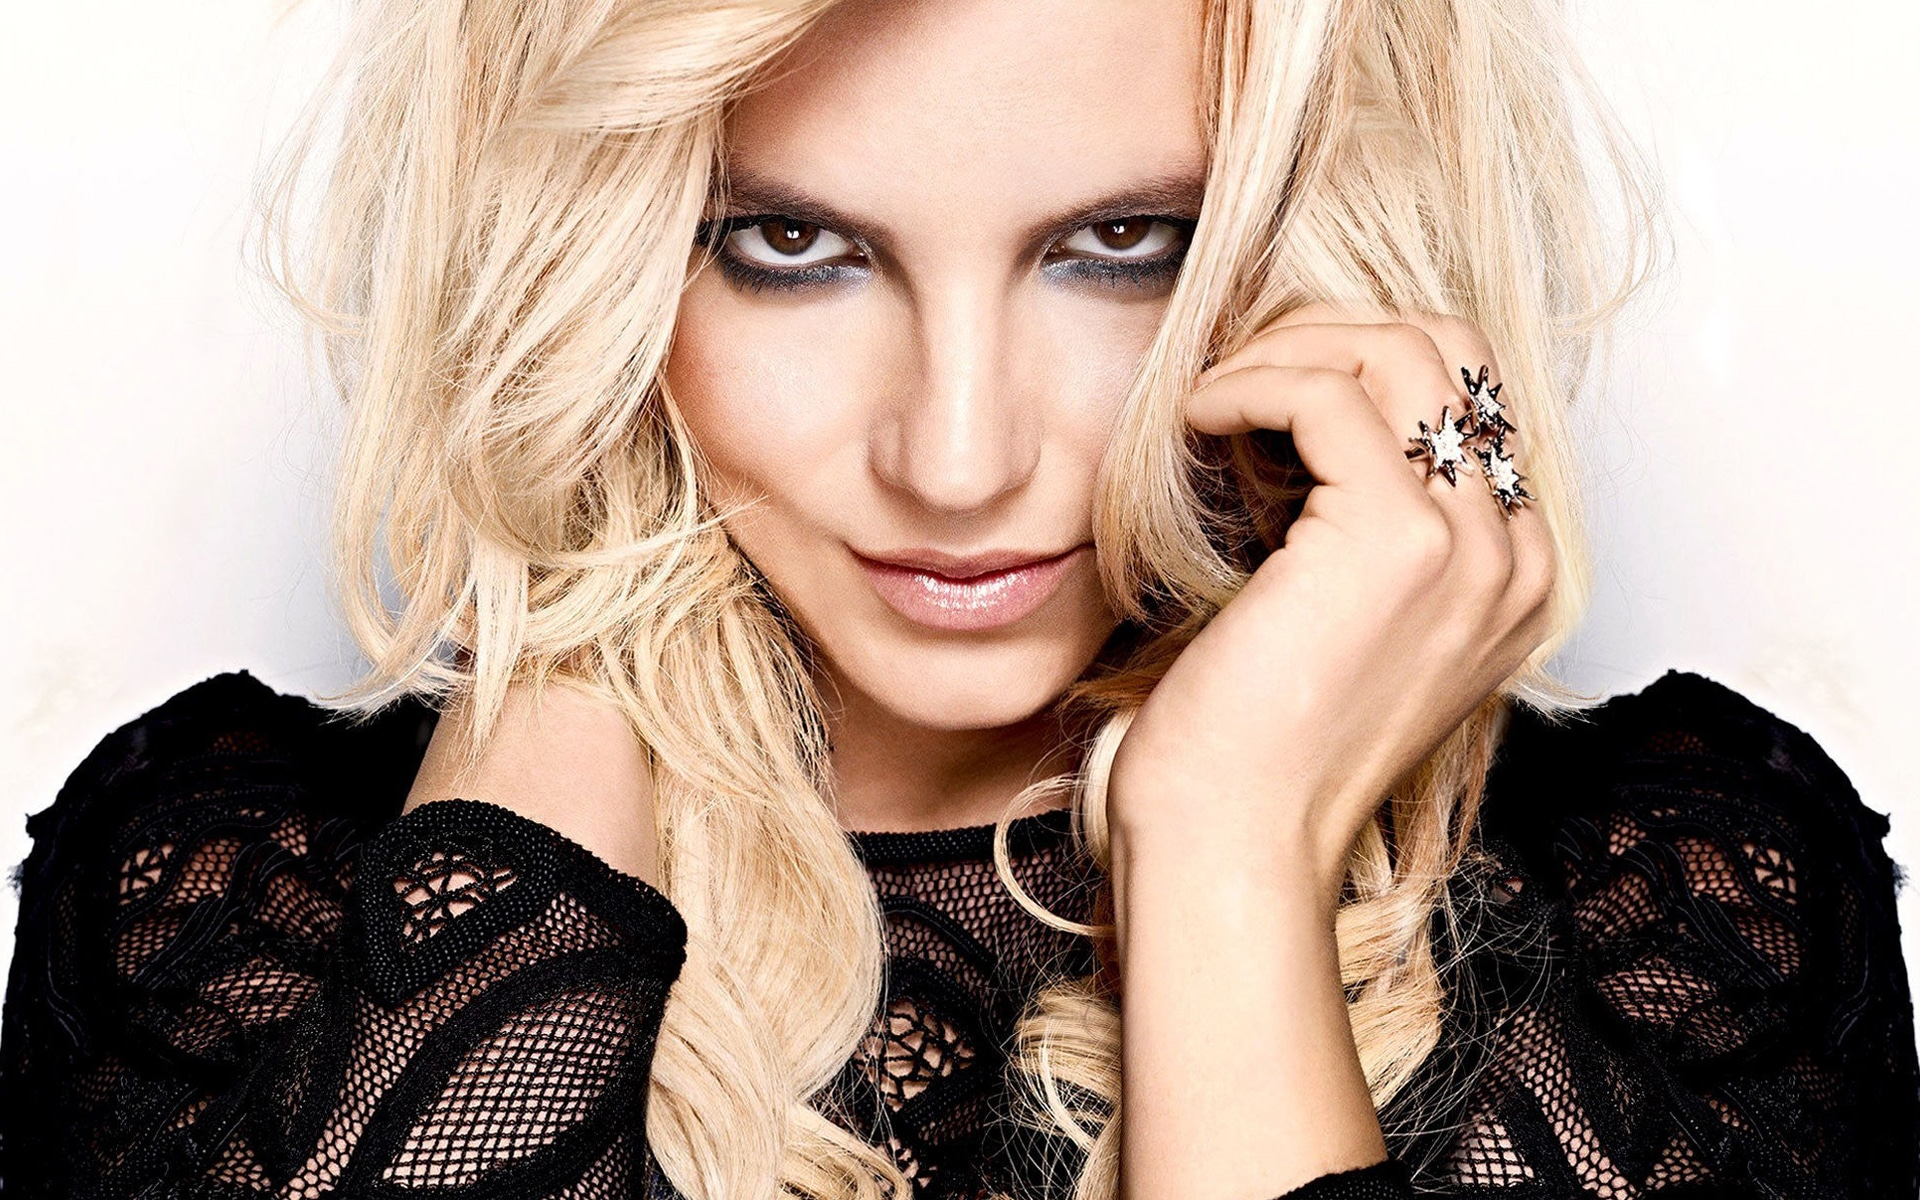 Britney Spears American Singer, Dancer, Songwriter, Actress, Record Producer